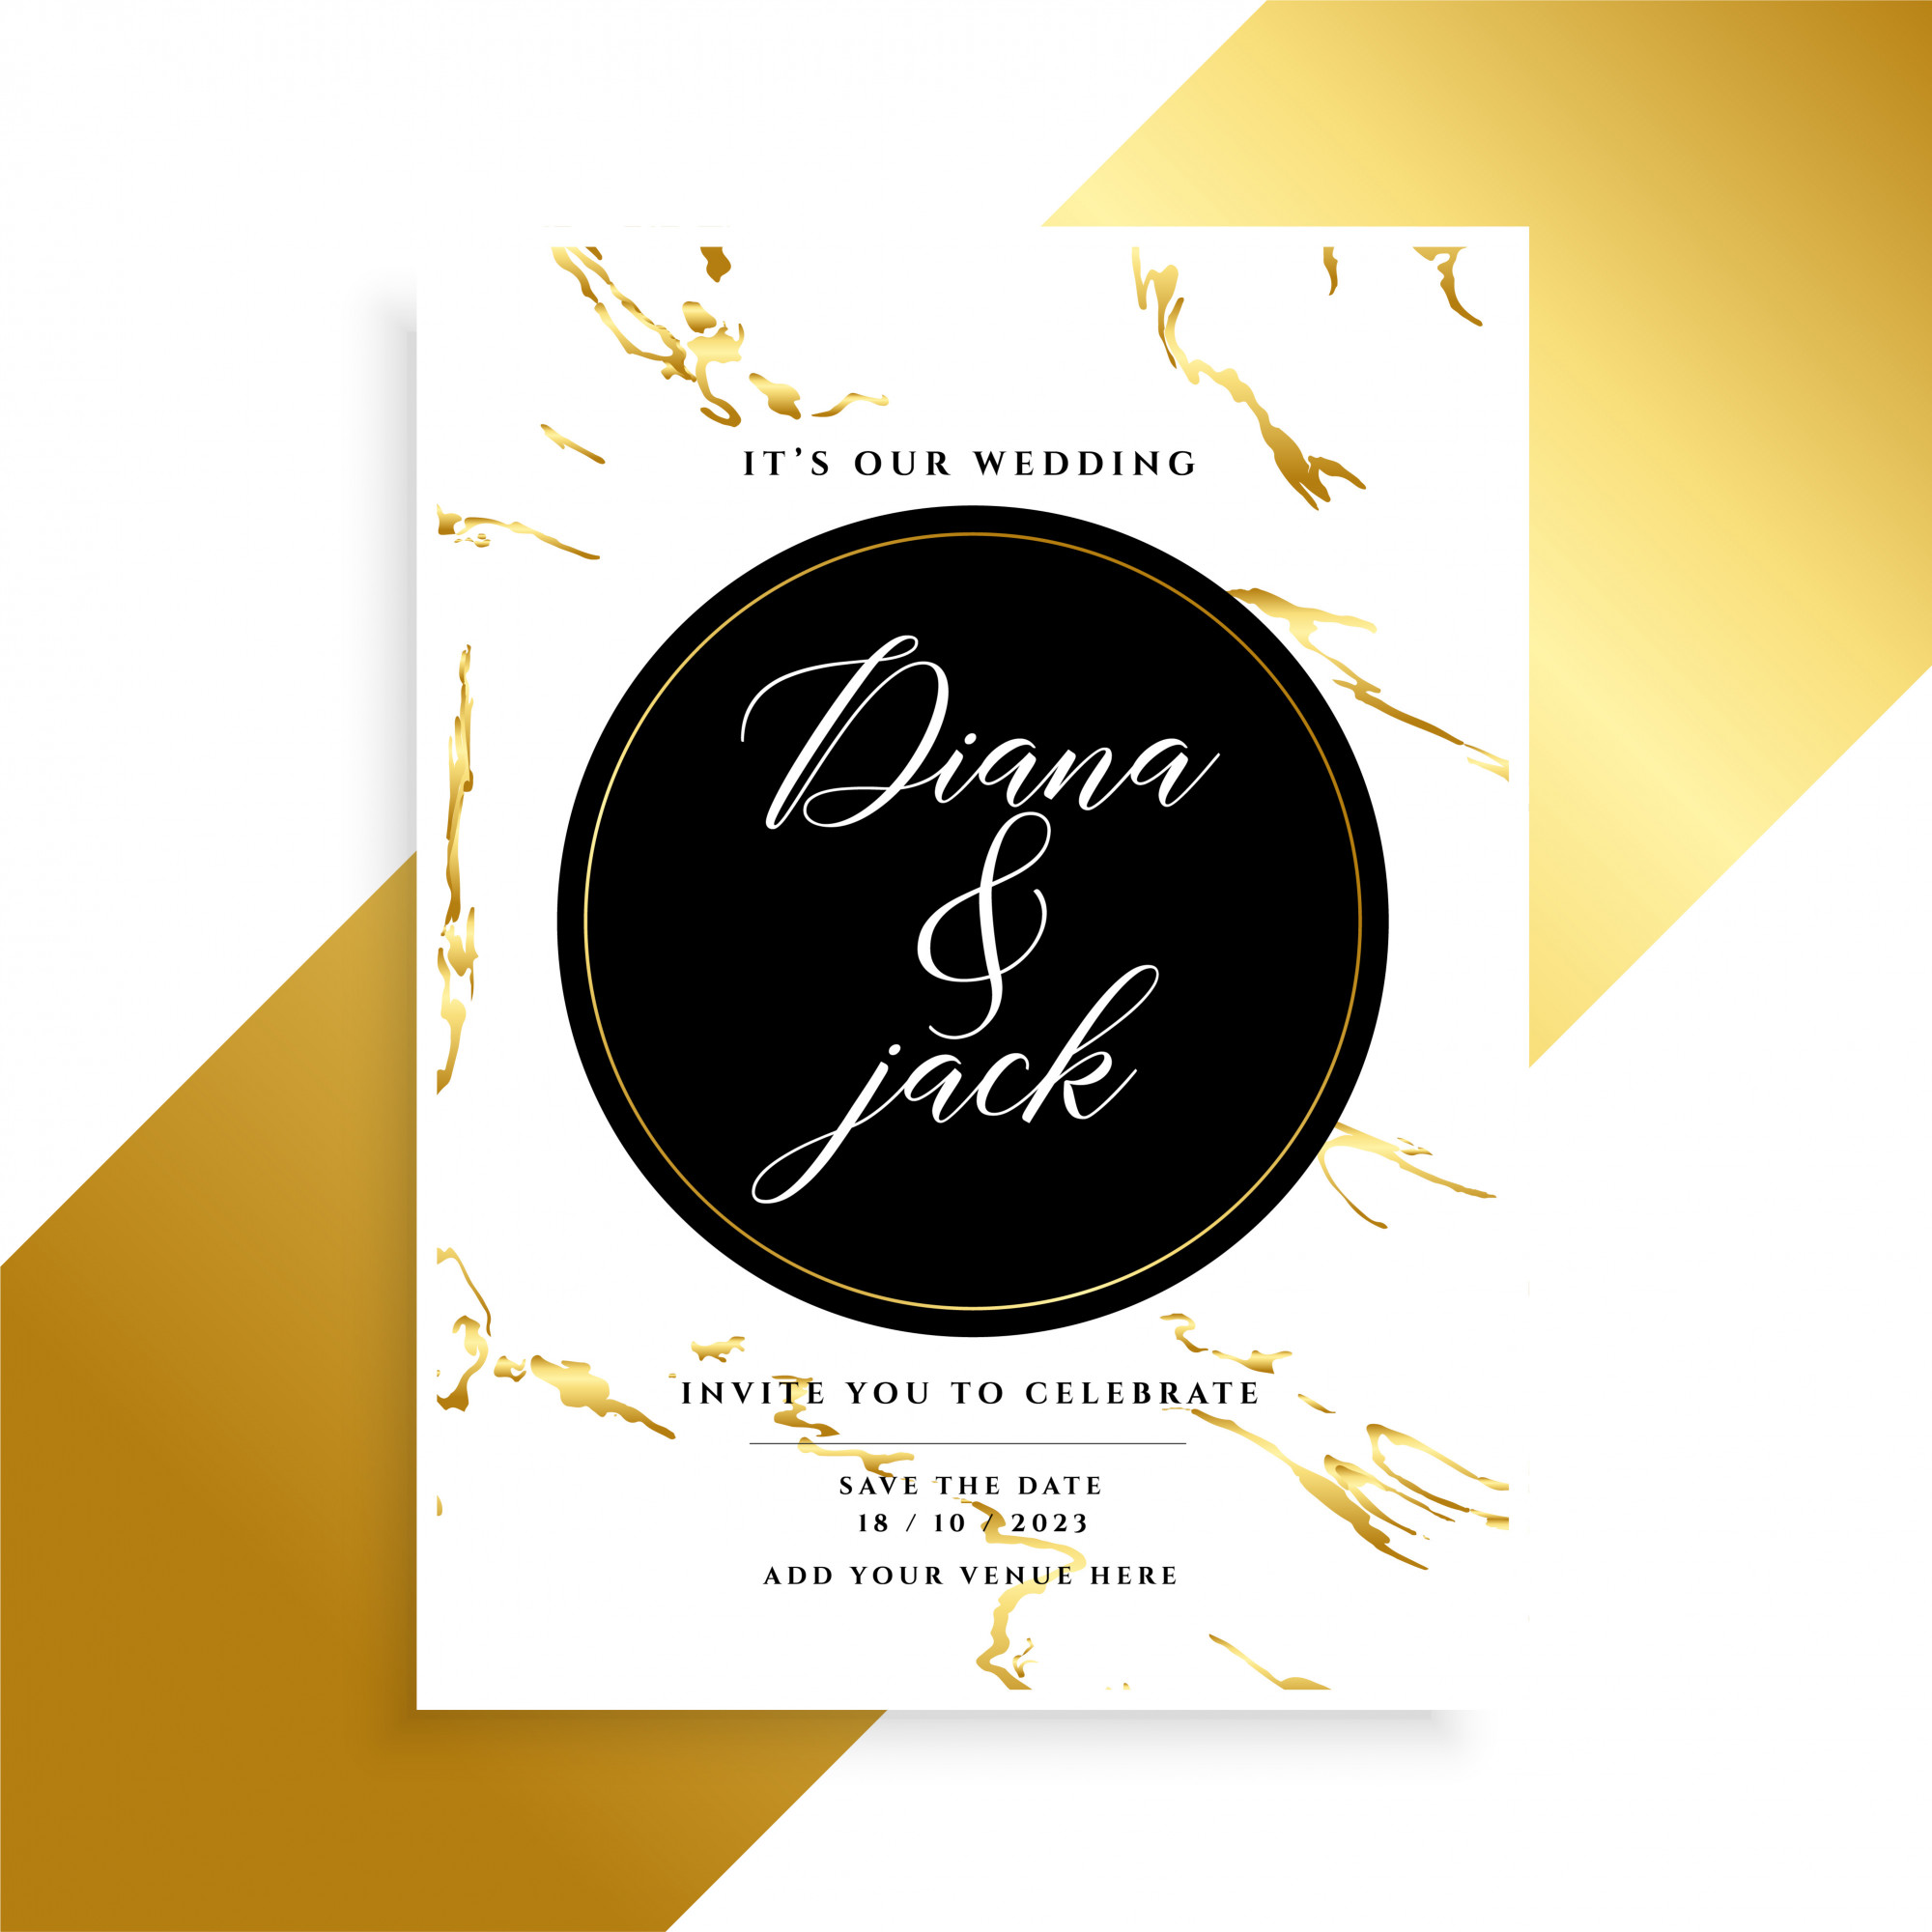 Luxury wedding card design with marble texture